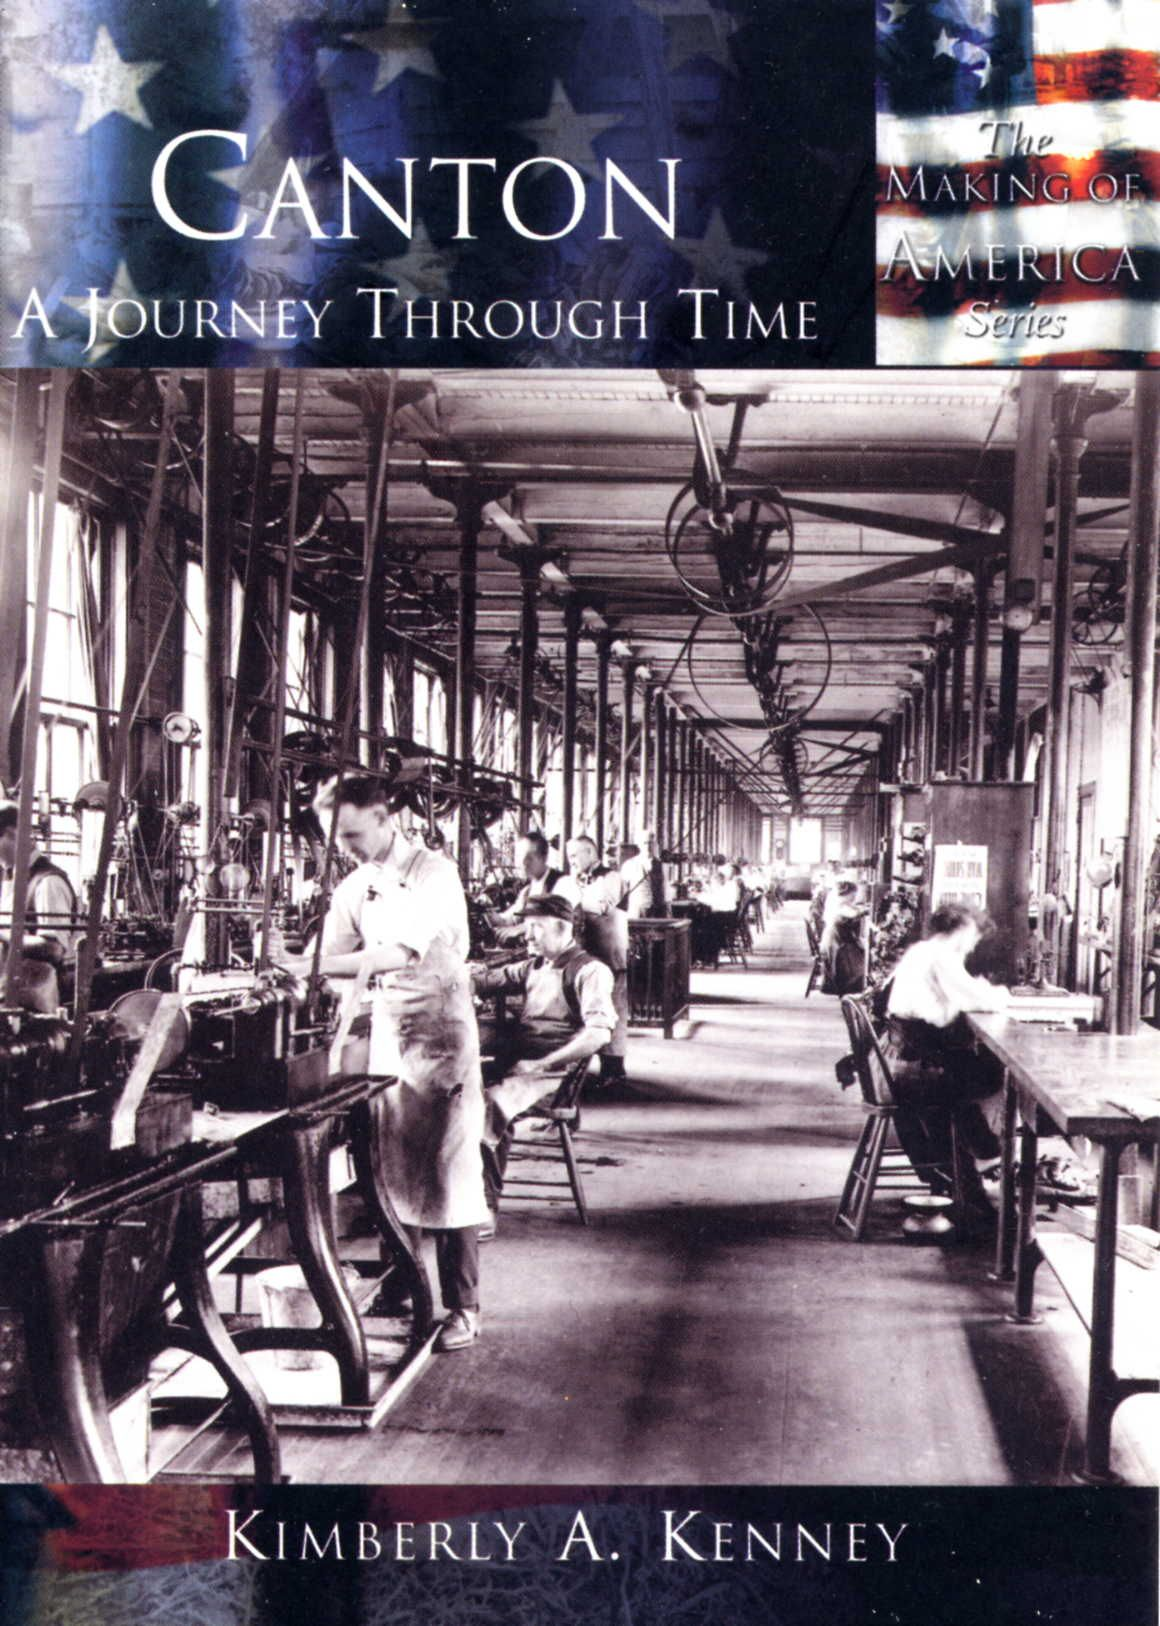 Canton A Journey Through Time by Kimberly A. Kenney 24